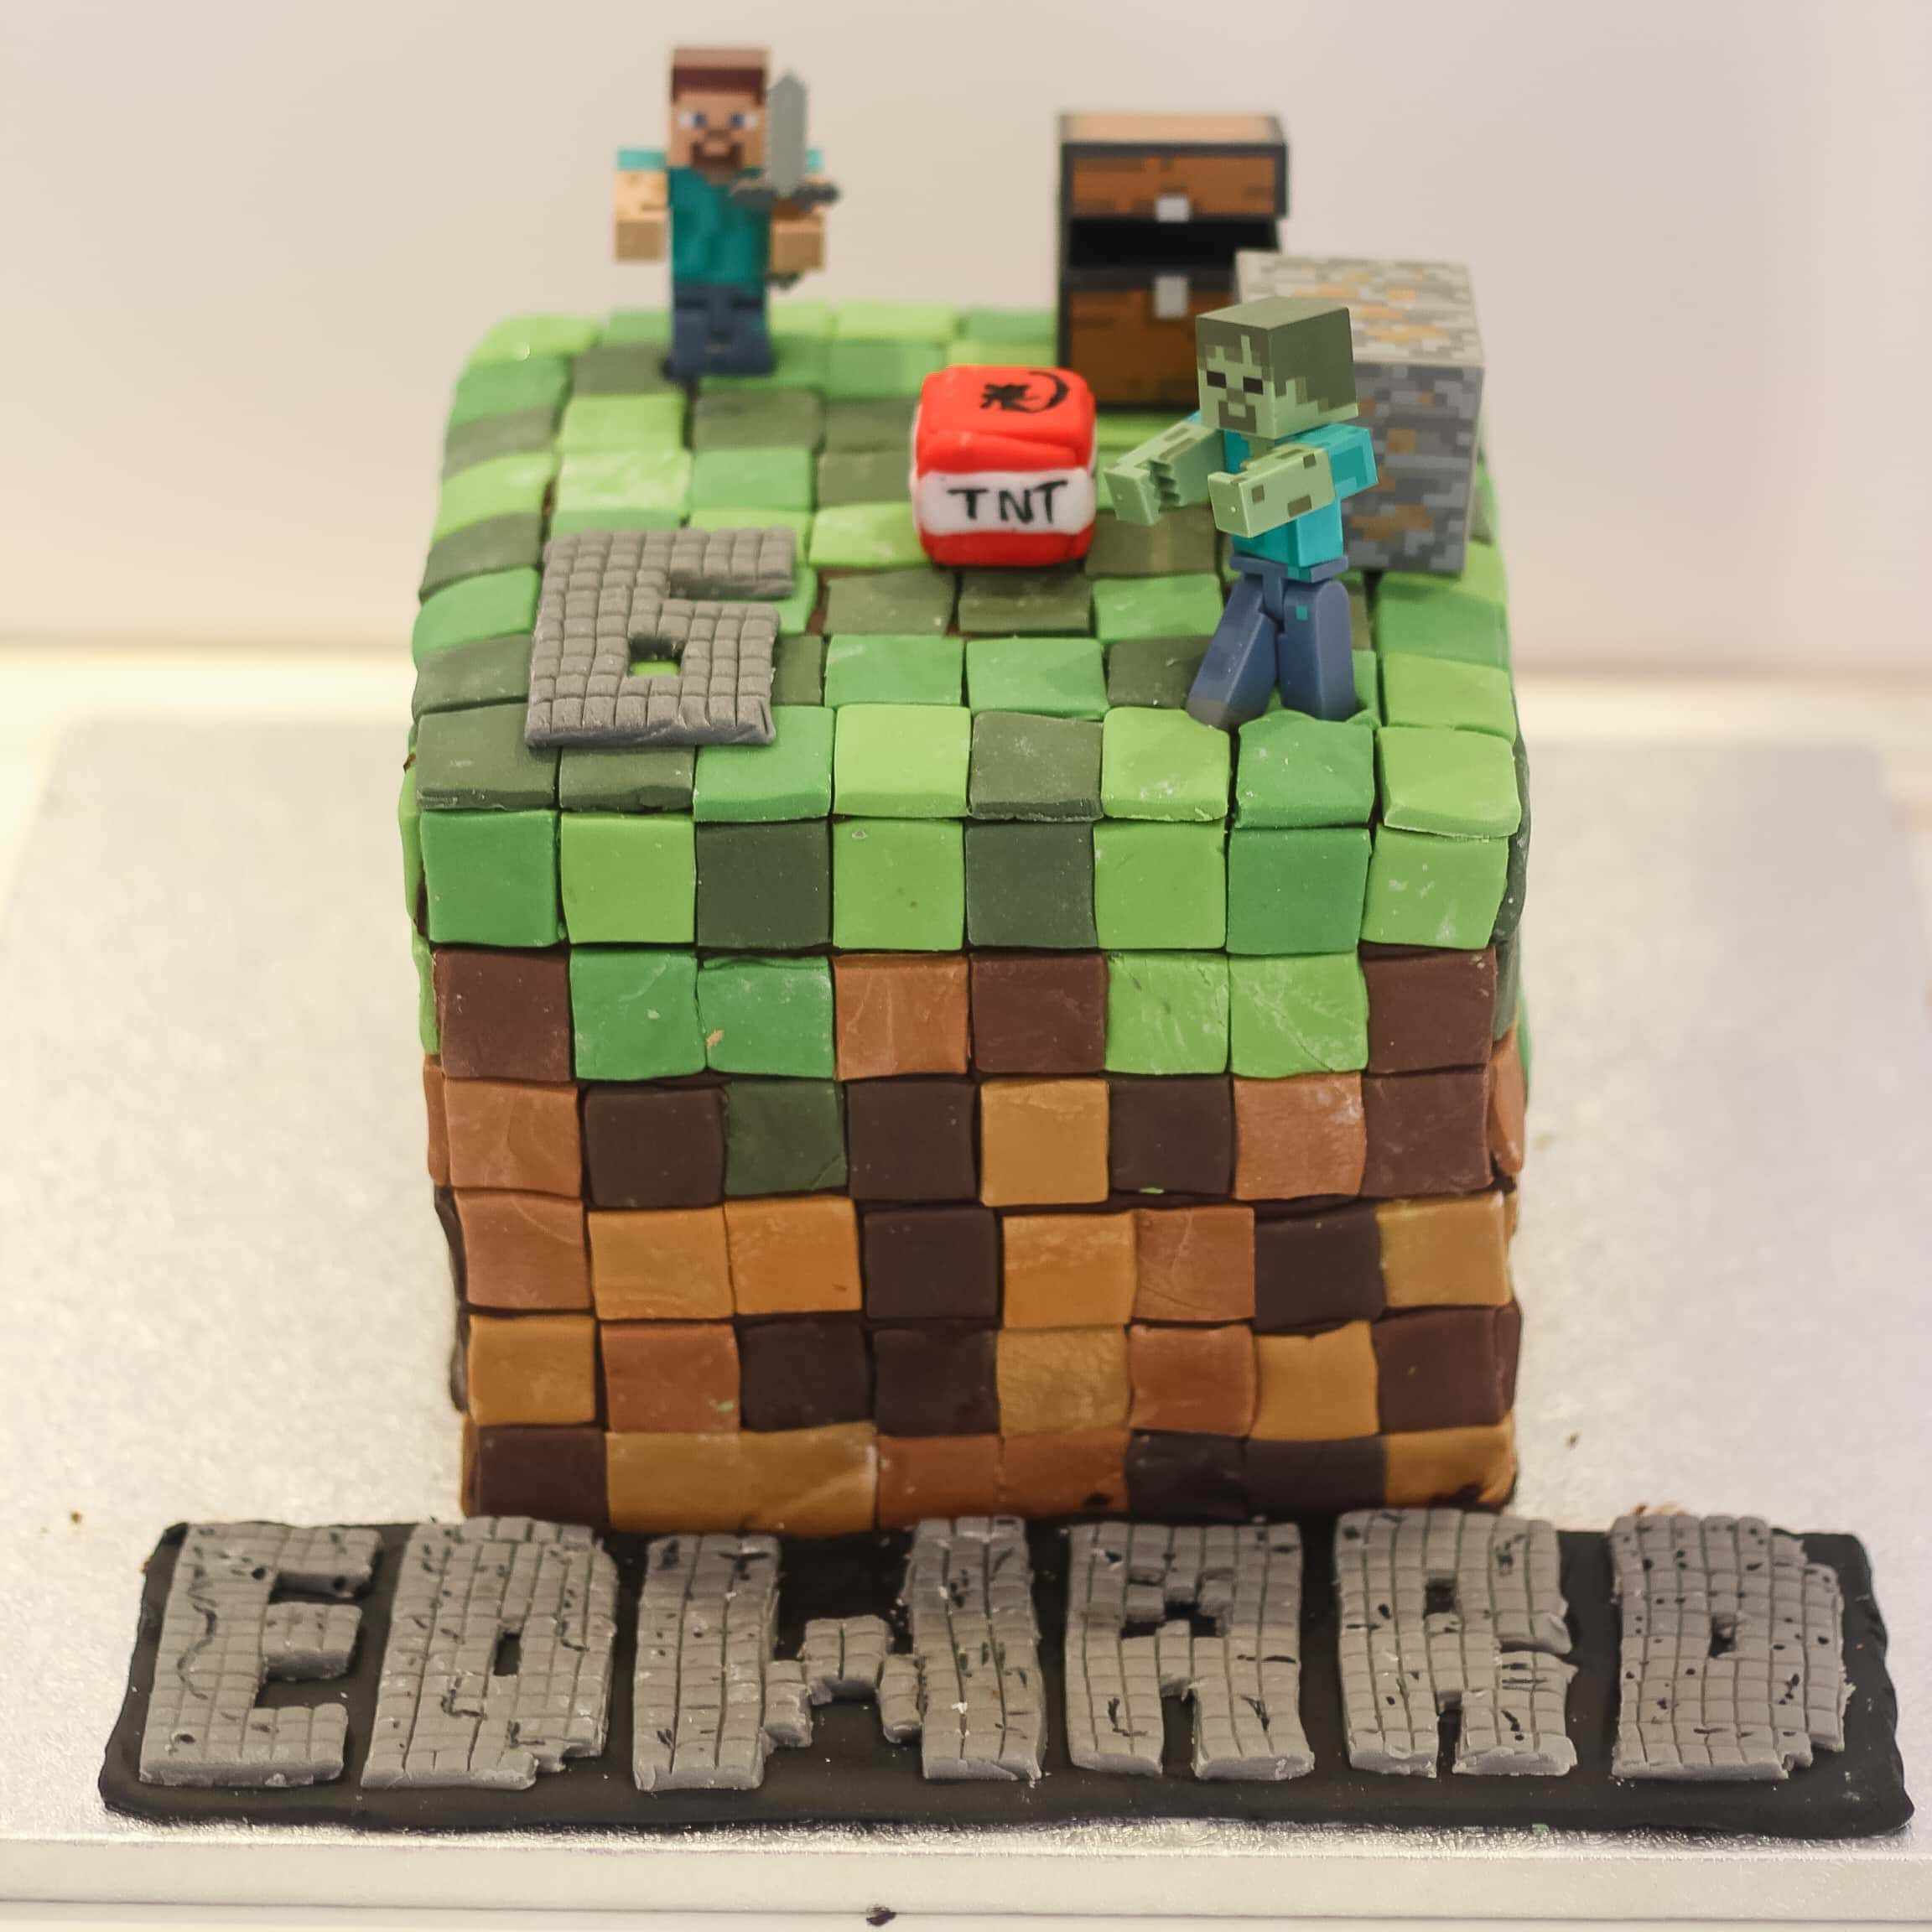 The Minecraft Birthday cake I made for my son's birthday - incuding Minecraft figures that make great Minecraft gifts